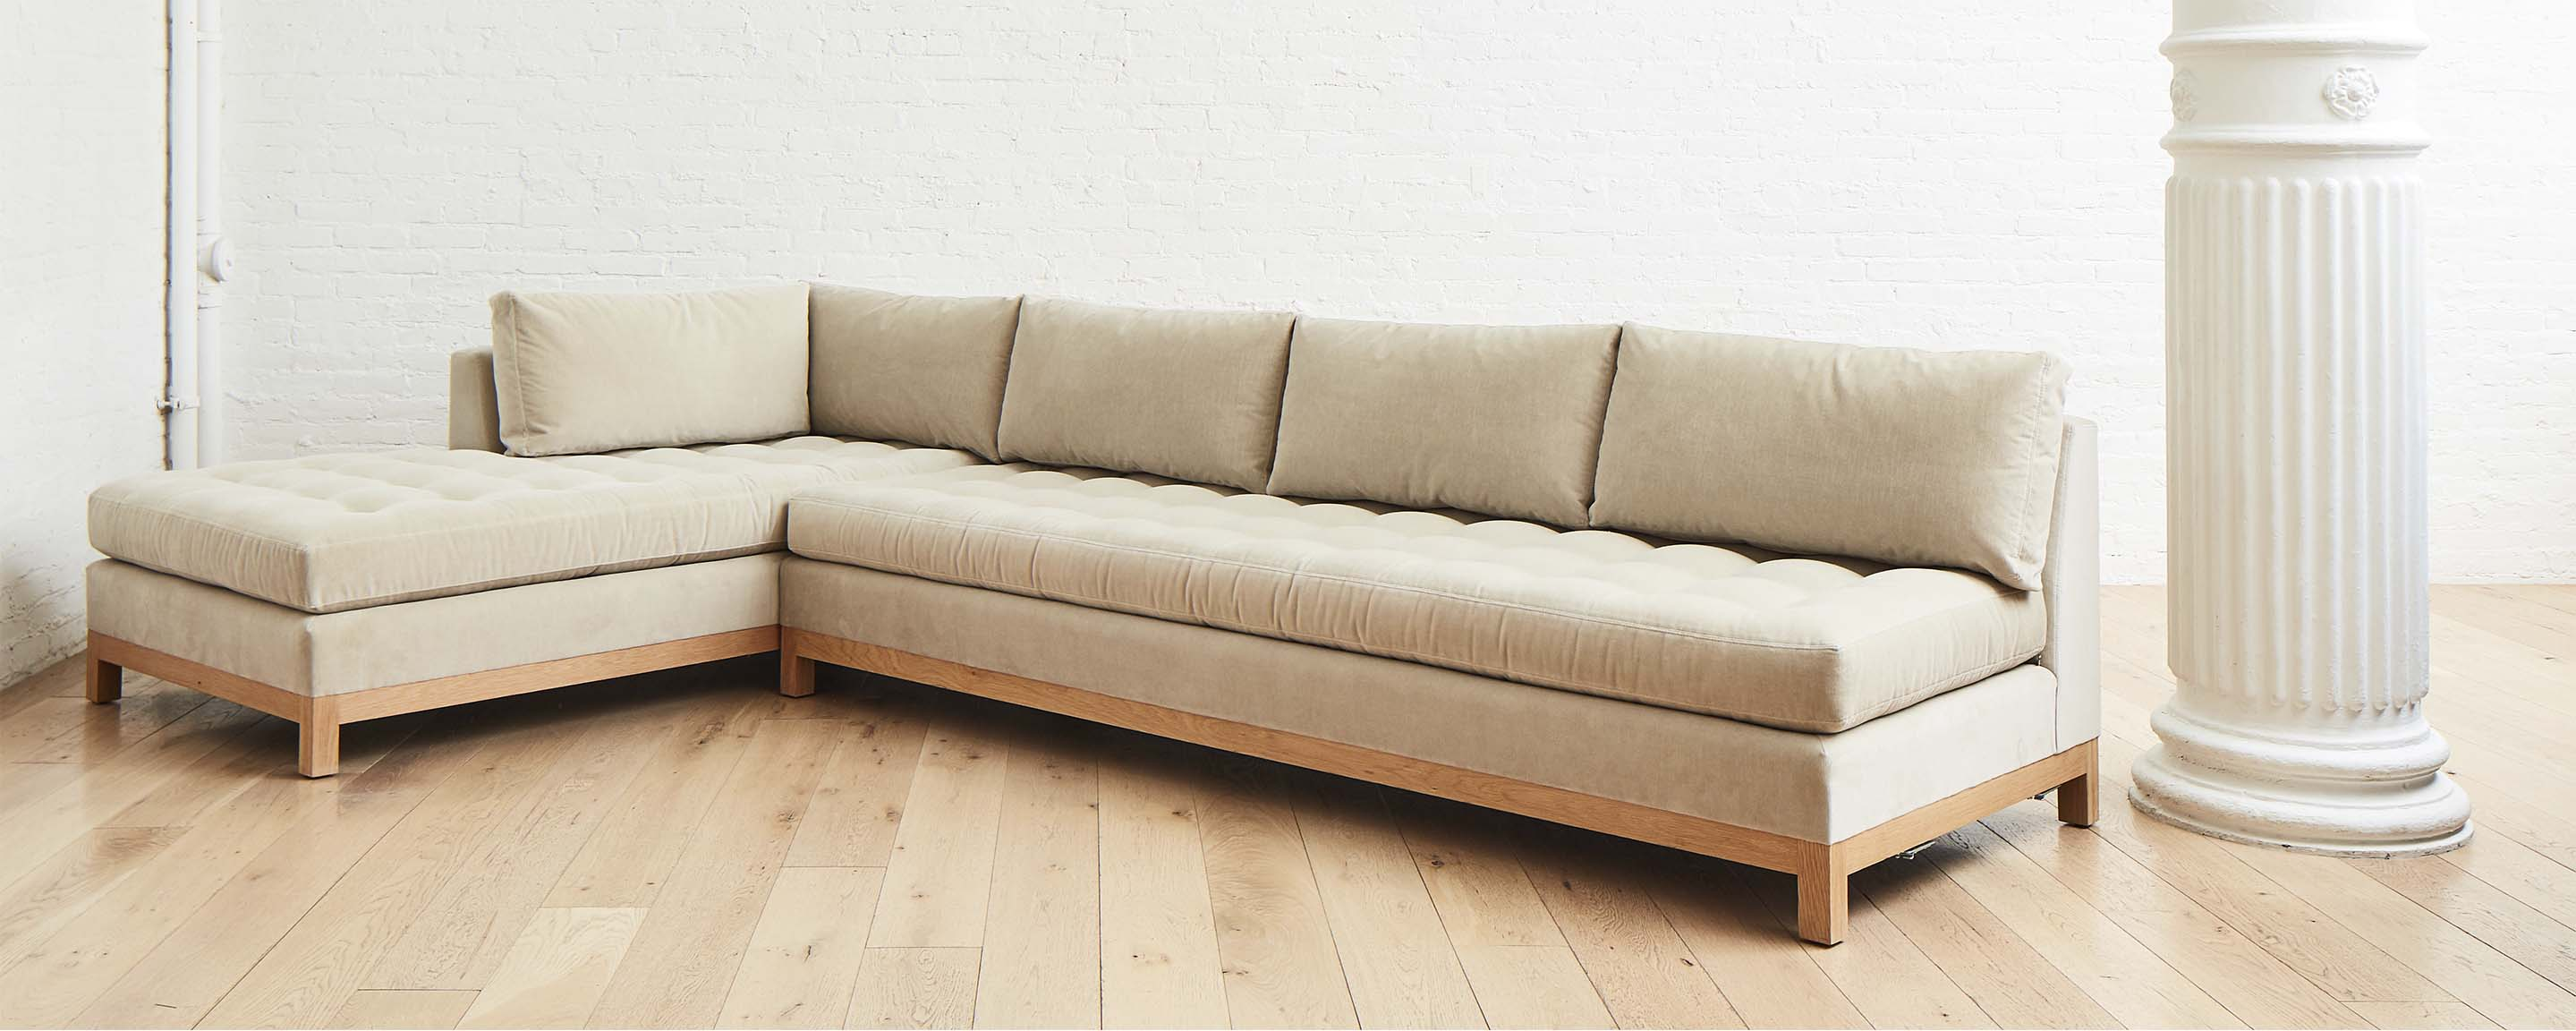 ... The Del Mar Sofa / Sectional ...